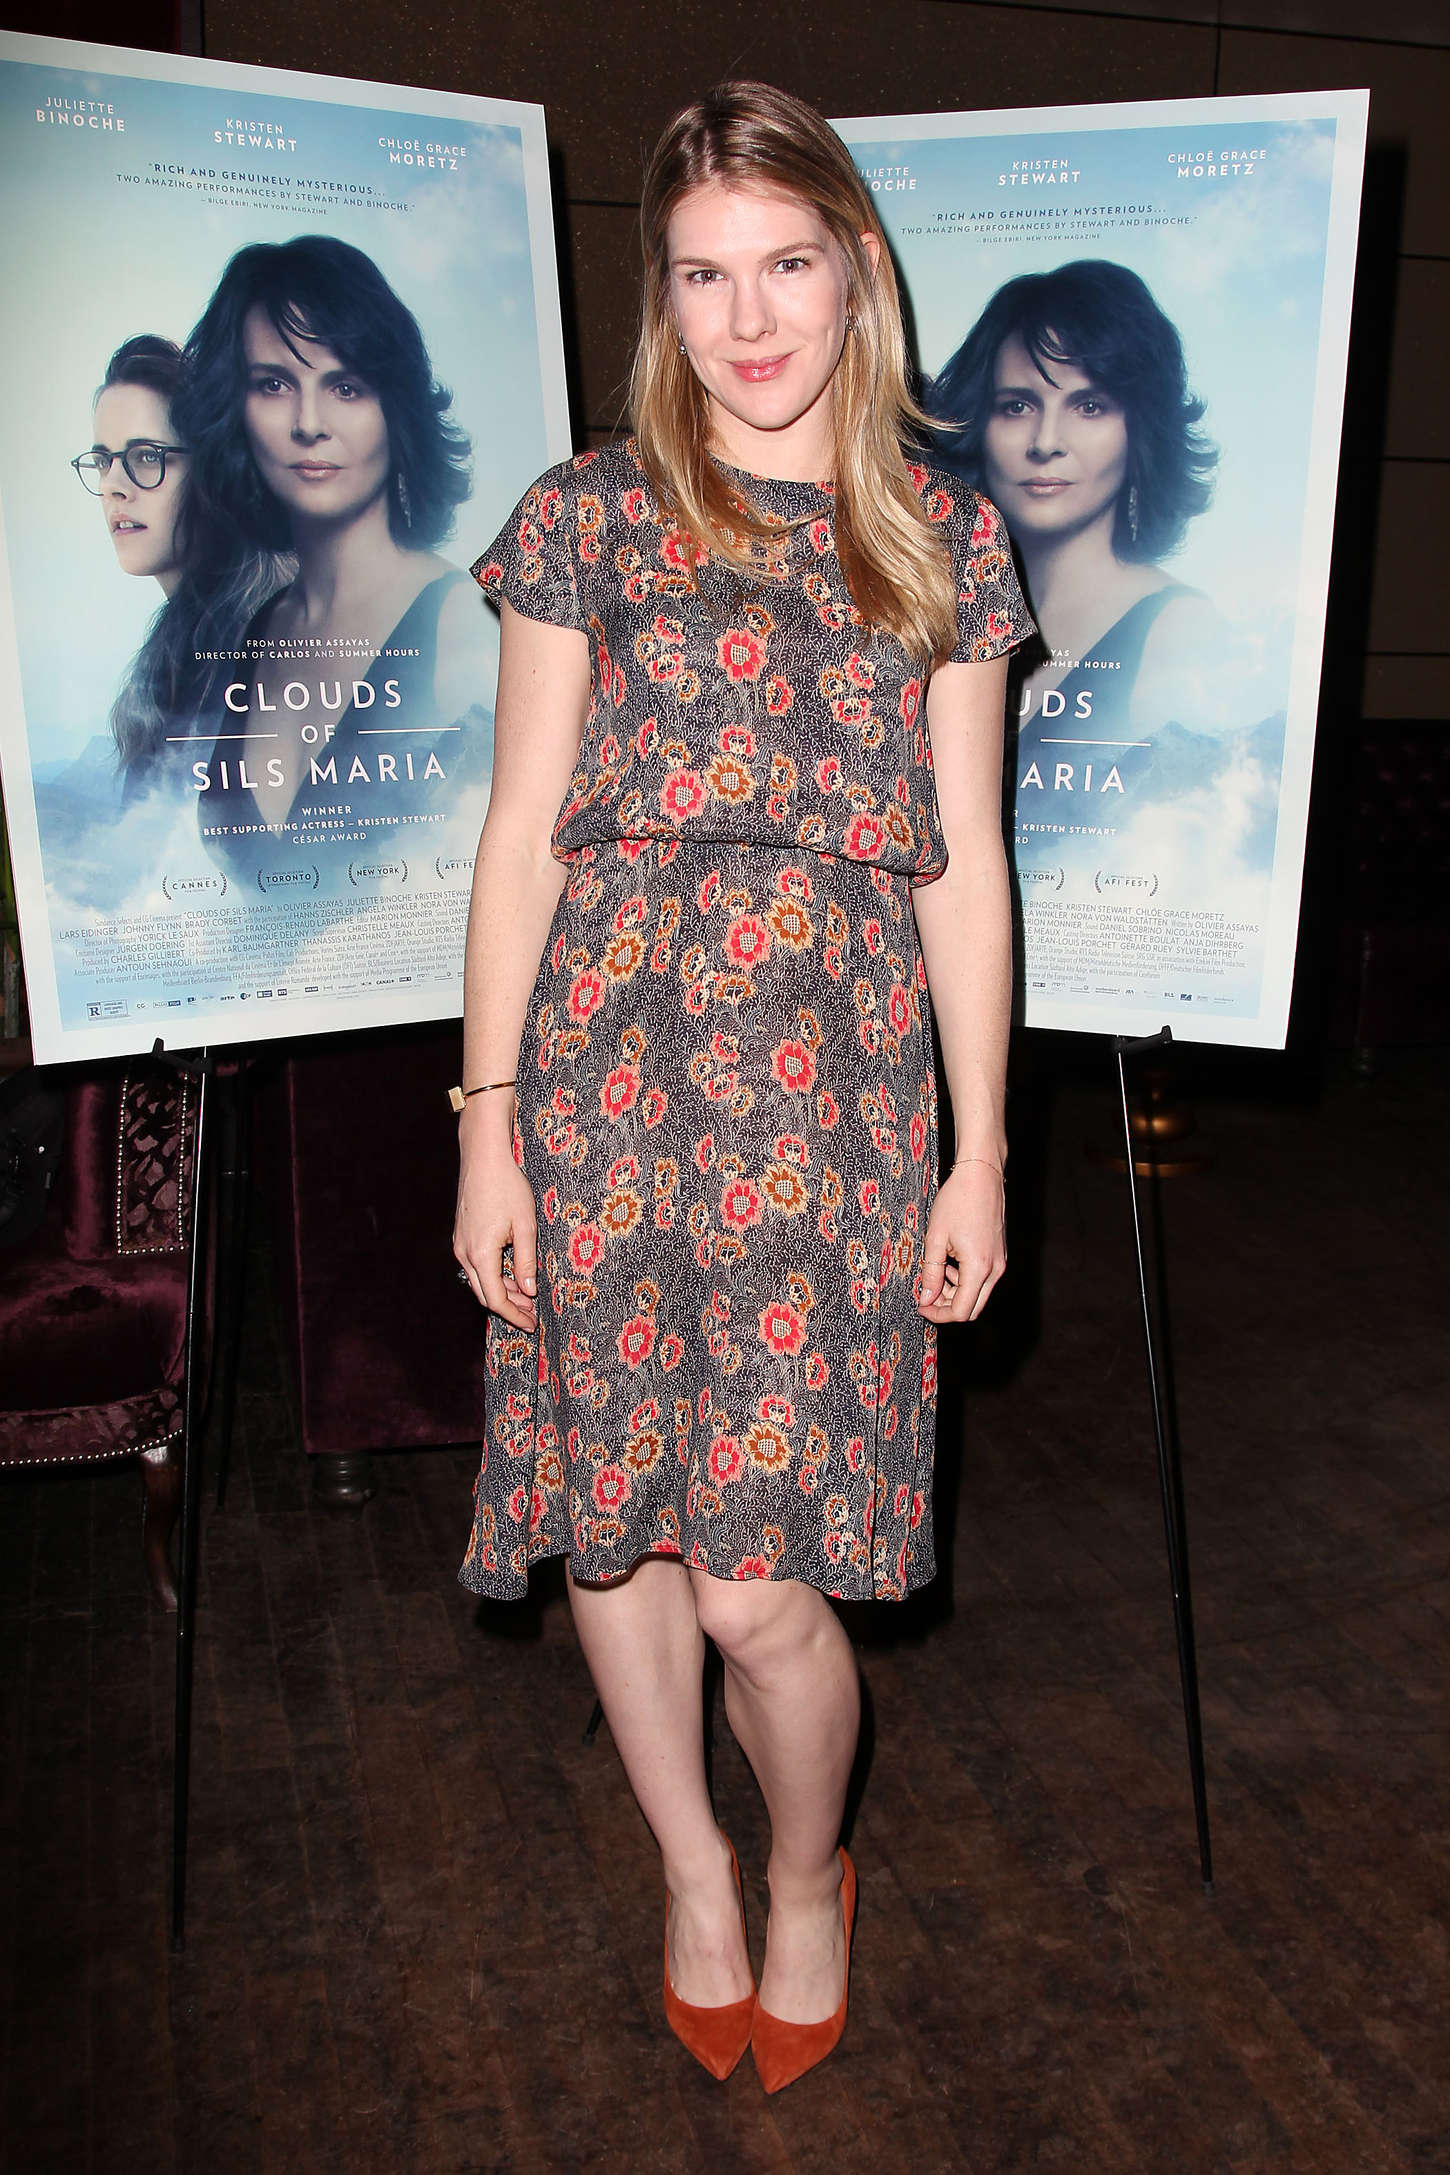 Lily Rabe Clouds of Sils Maria Theater Communtiy Screening in New York